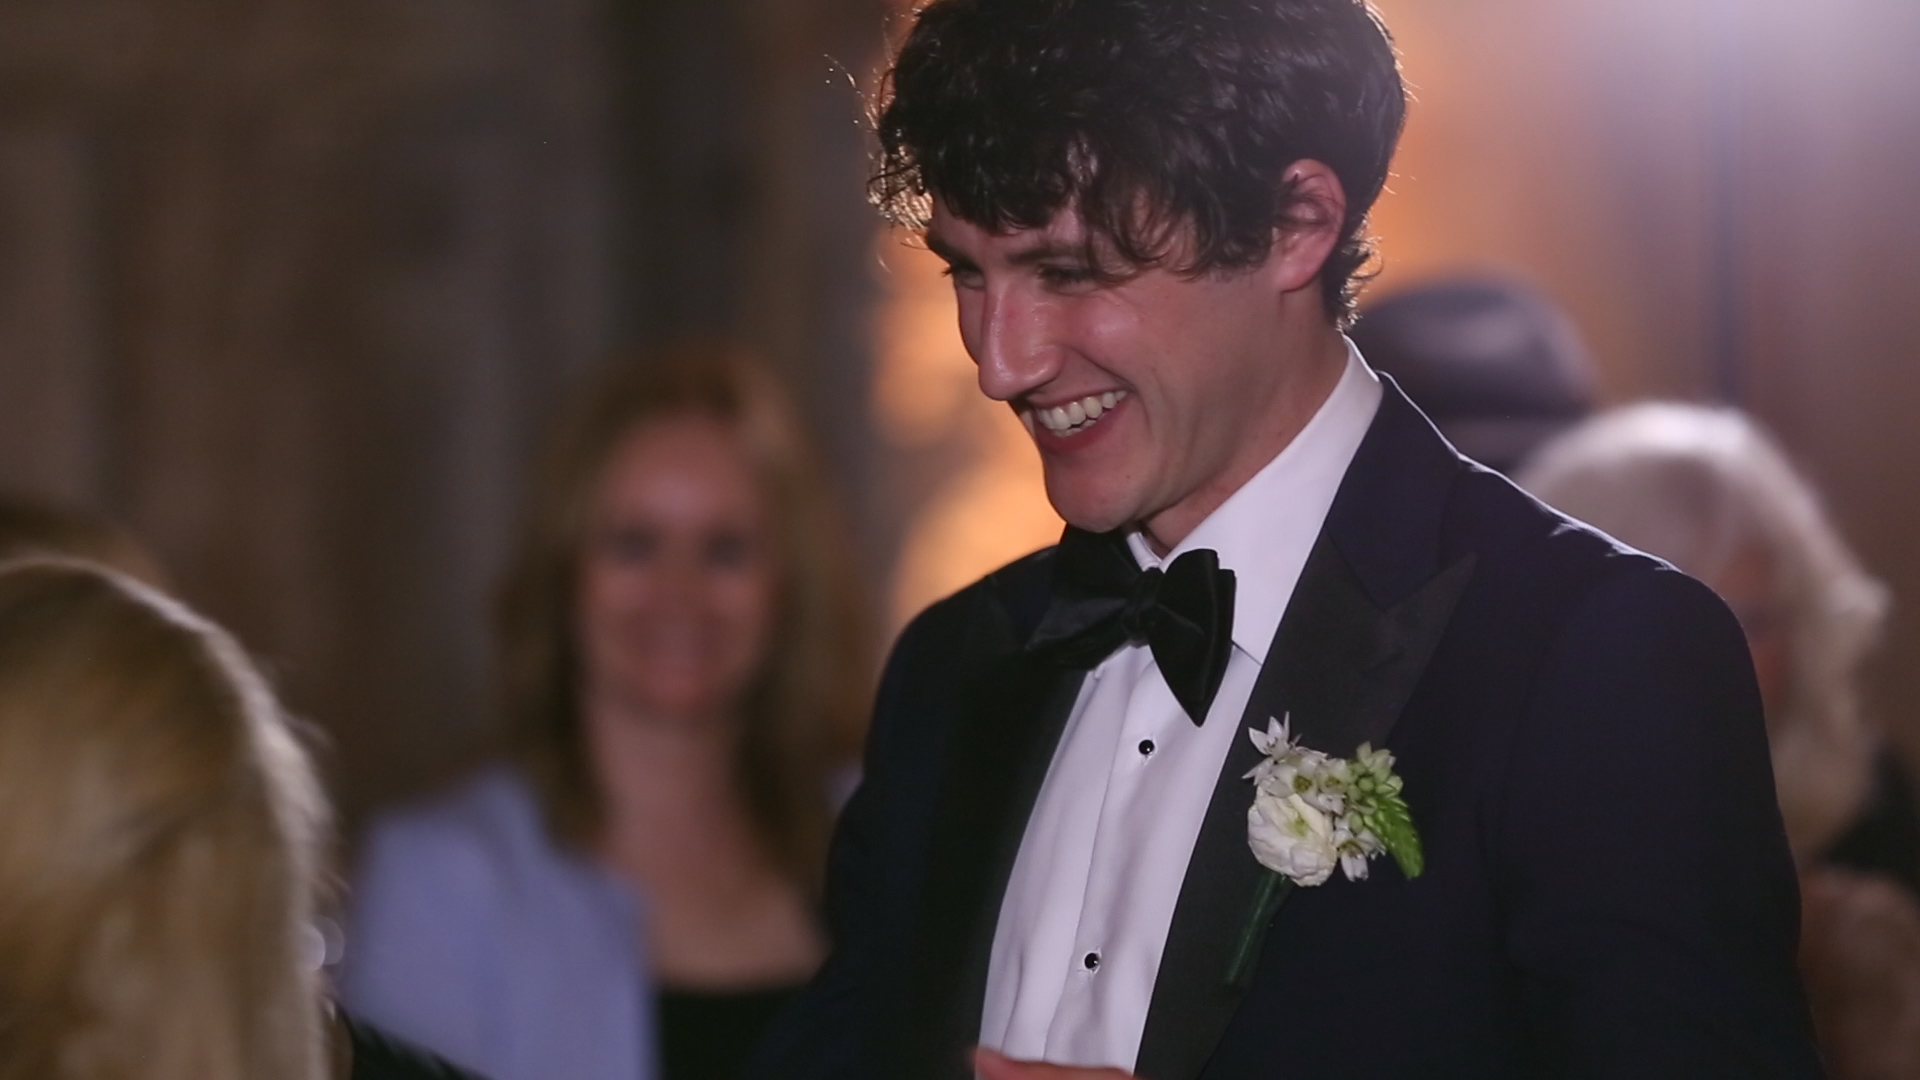 """Tanya and Conor danced to the first song they ever danced to while dating... """"Let's Get it On."""" Hehehe...fun first dance!"""